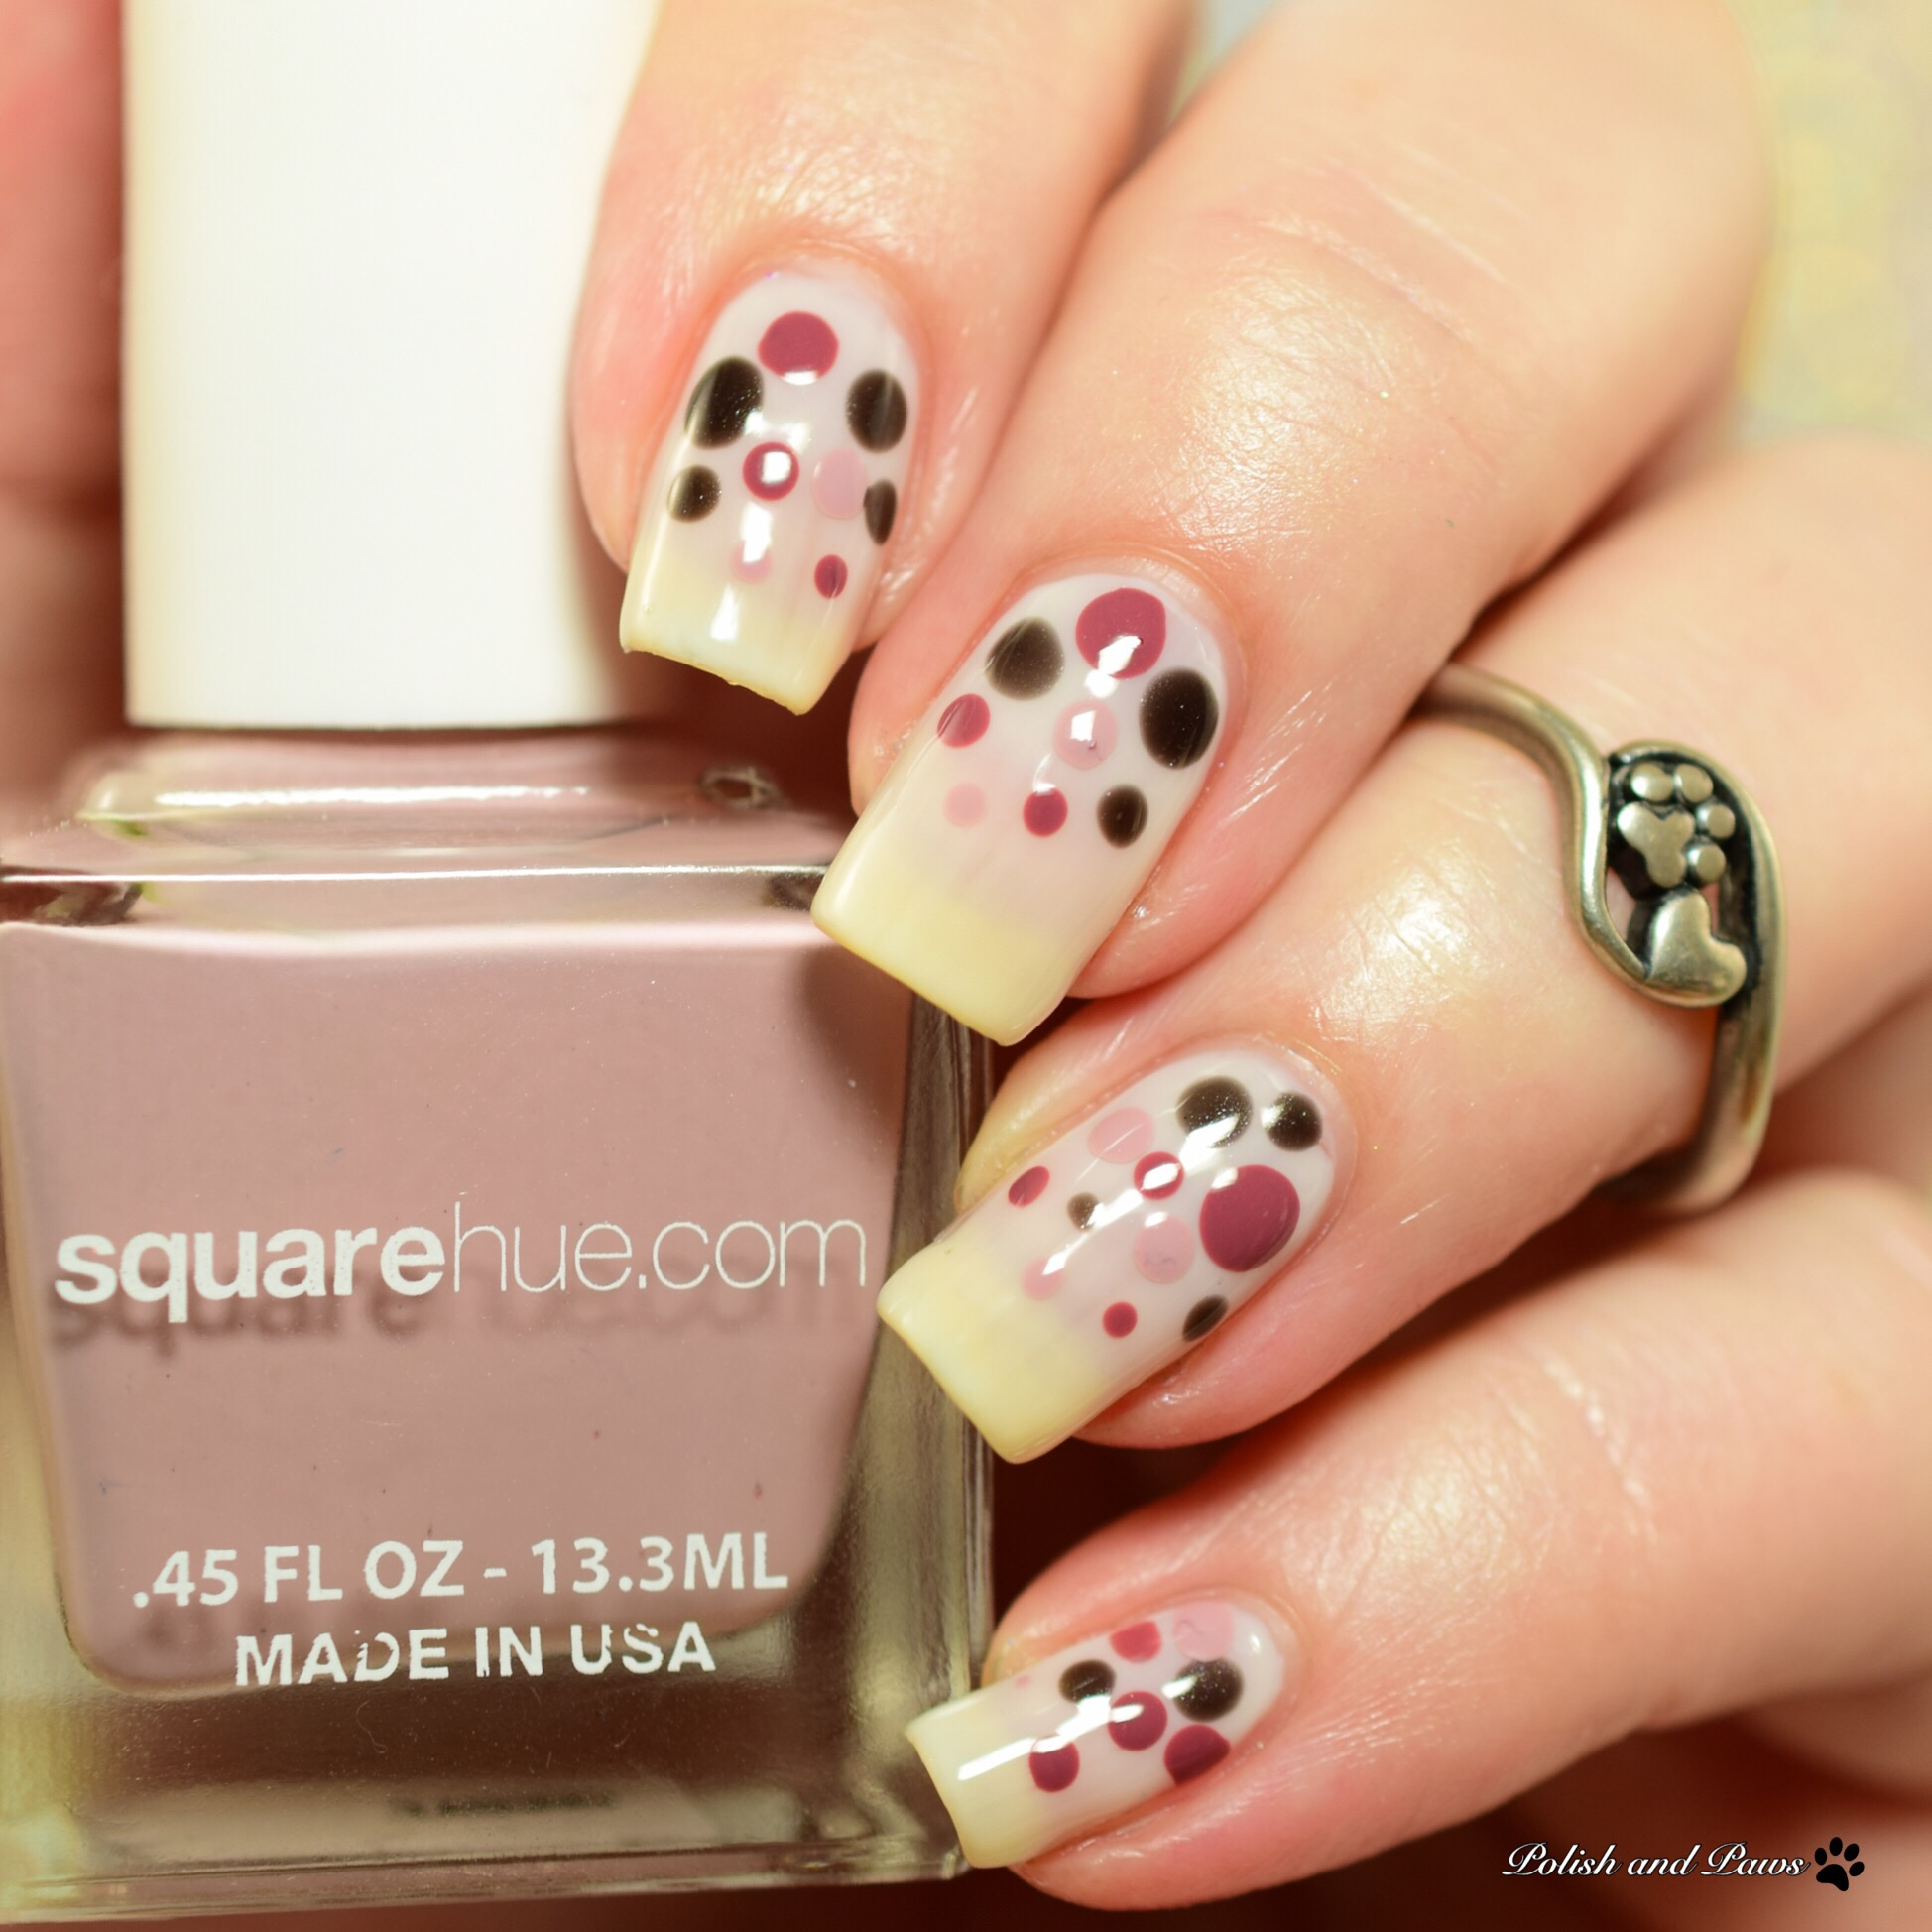 Square Hue Dance Collection Salsa Nail Art